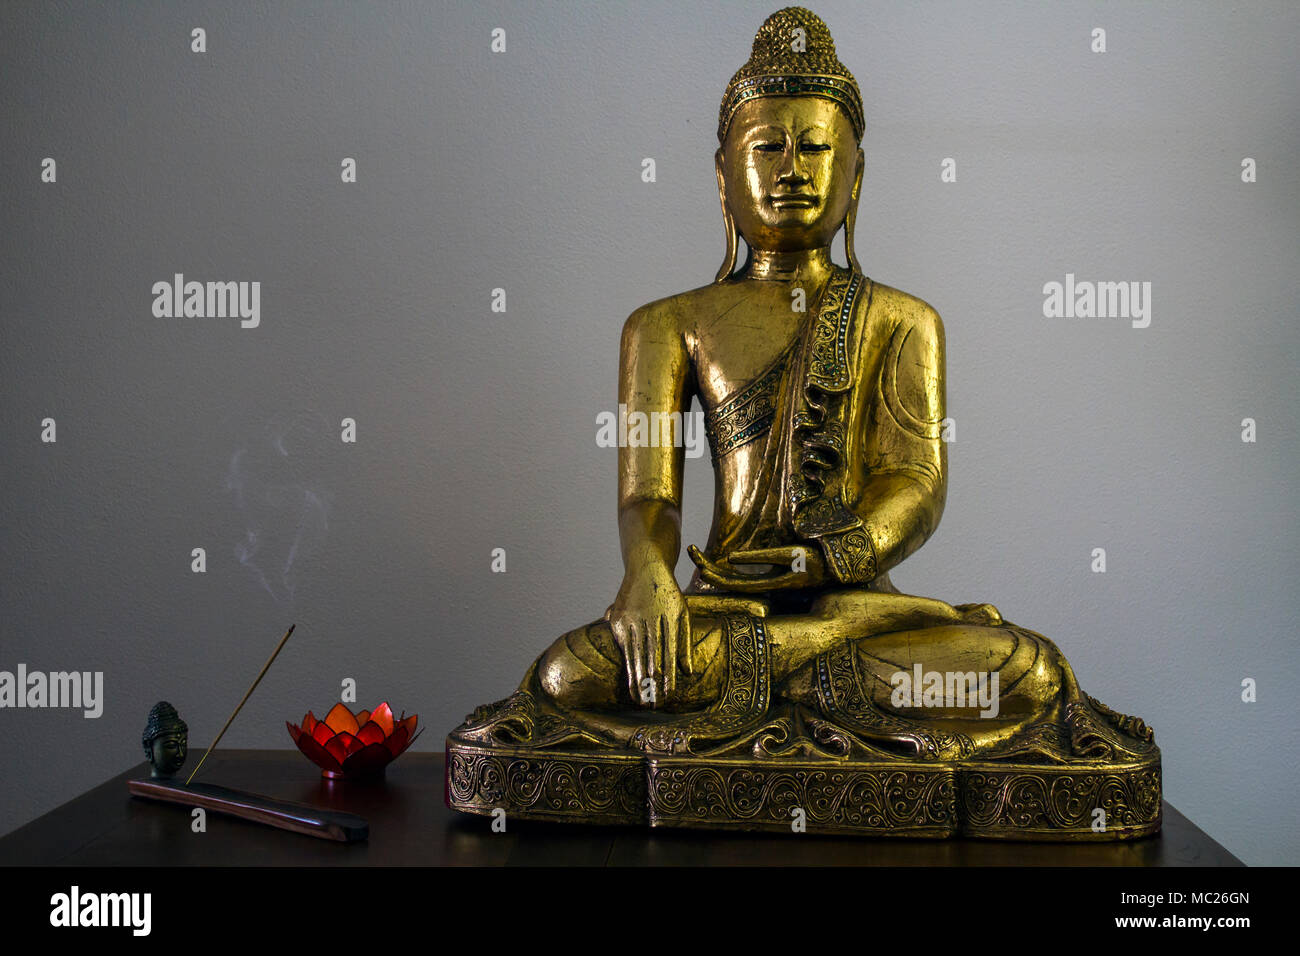 Big Buddha Statue And Incense Stick Burning In Incense Burner And